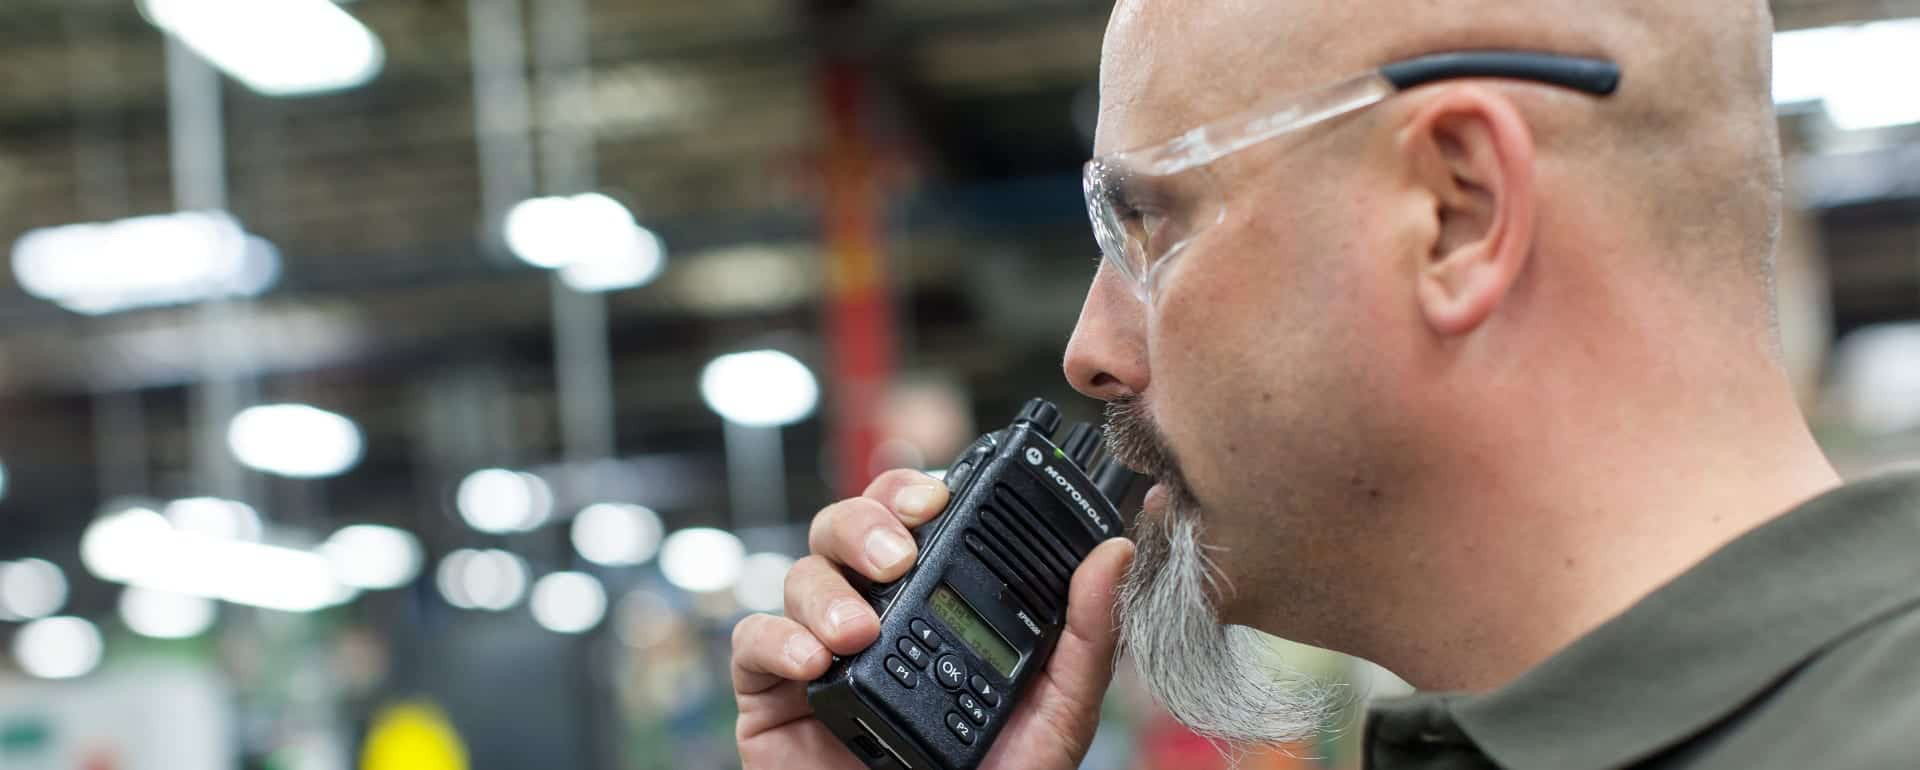 Manufacturing Solutions from Industrial Communications and Electronics